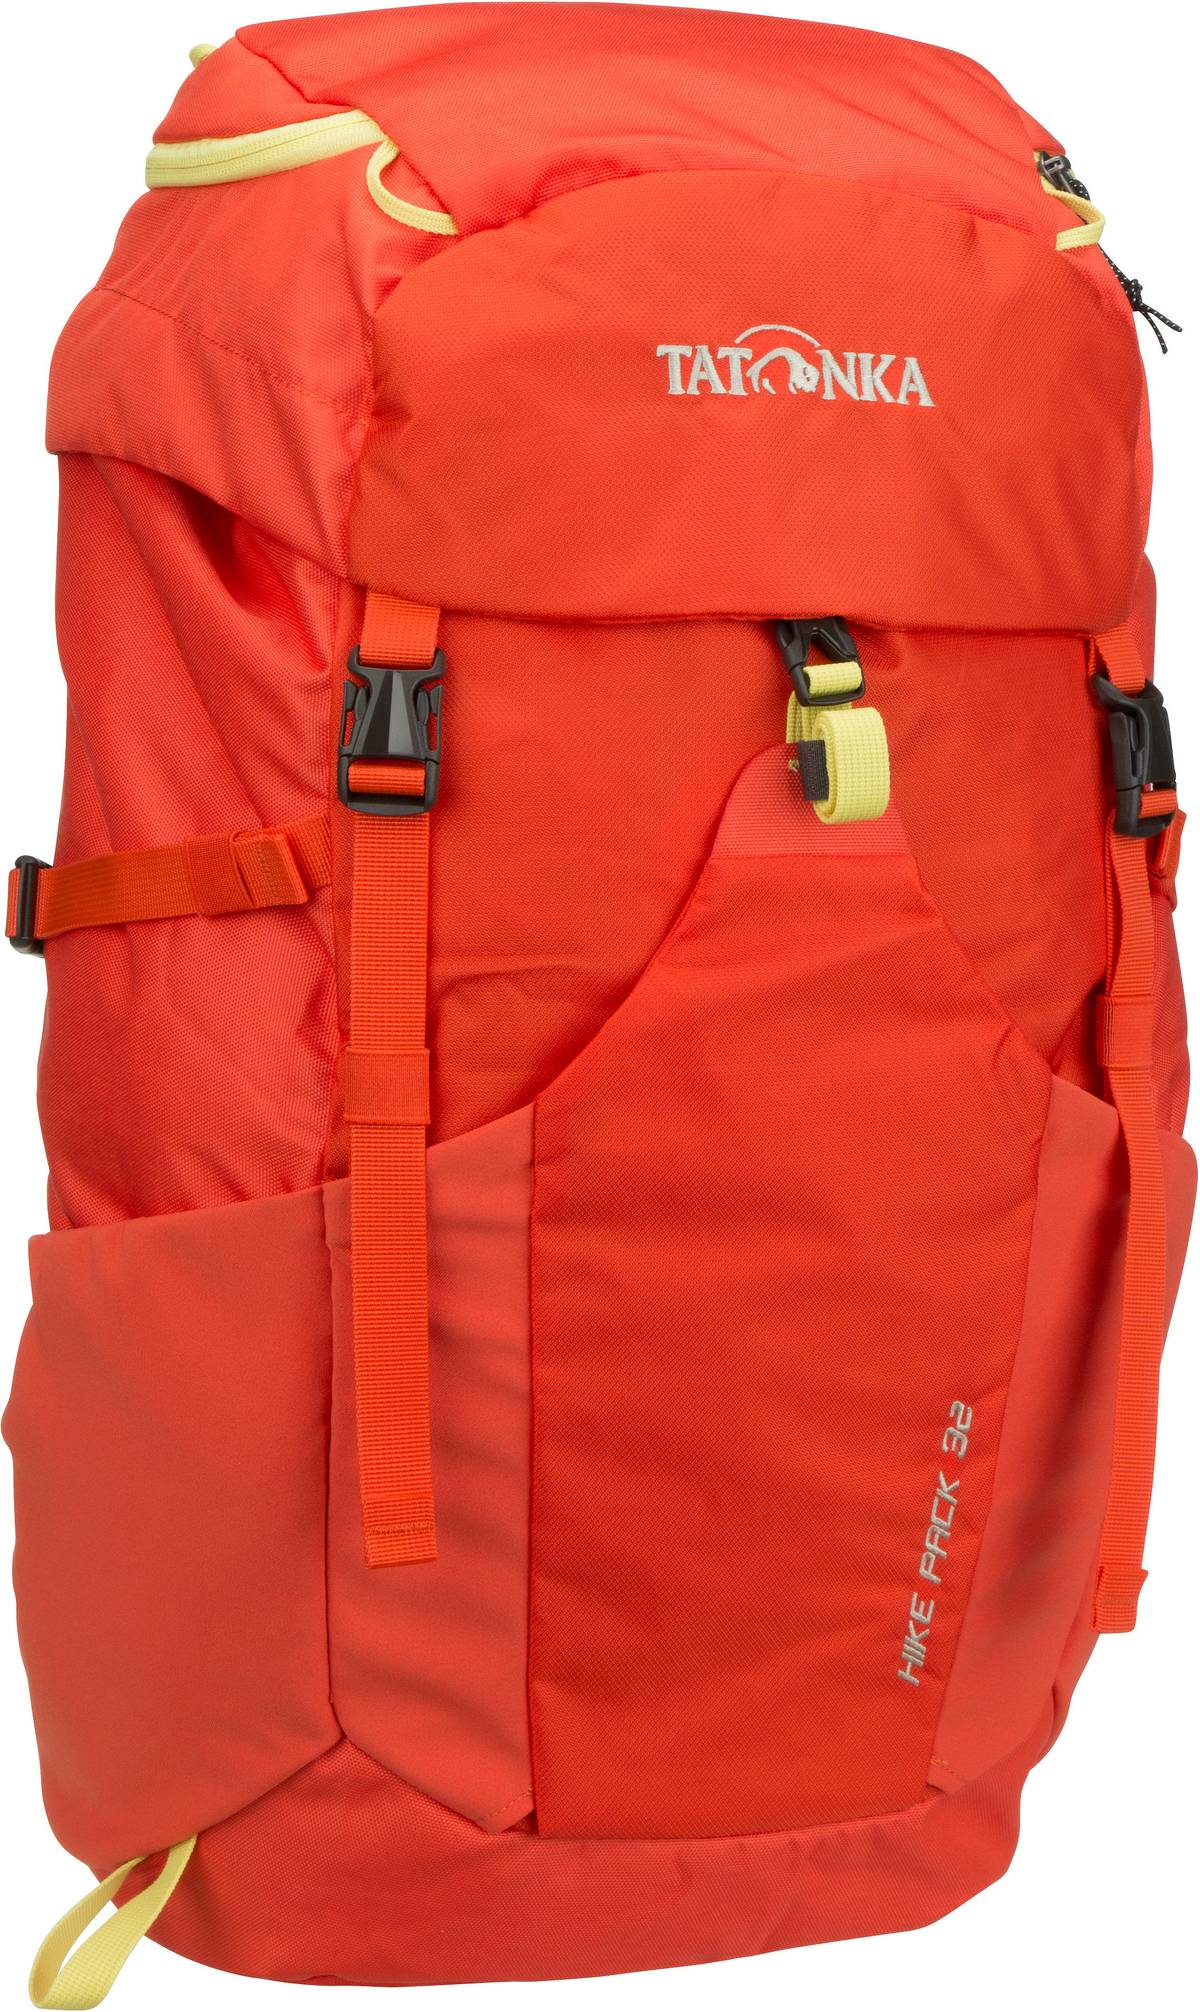 Wanderrucksack Hike Pack 32 Red Orange (32 Liter)